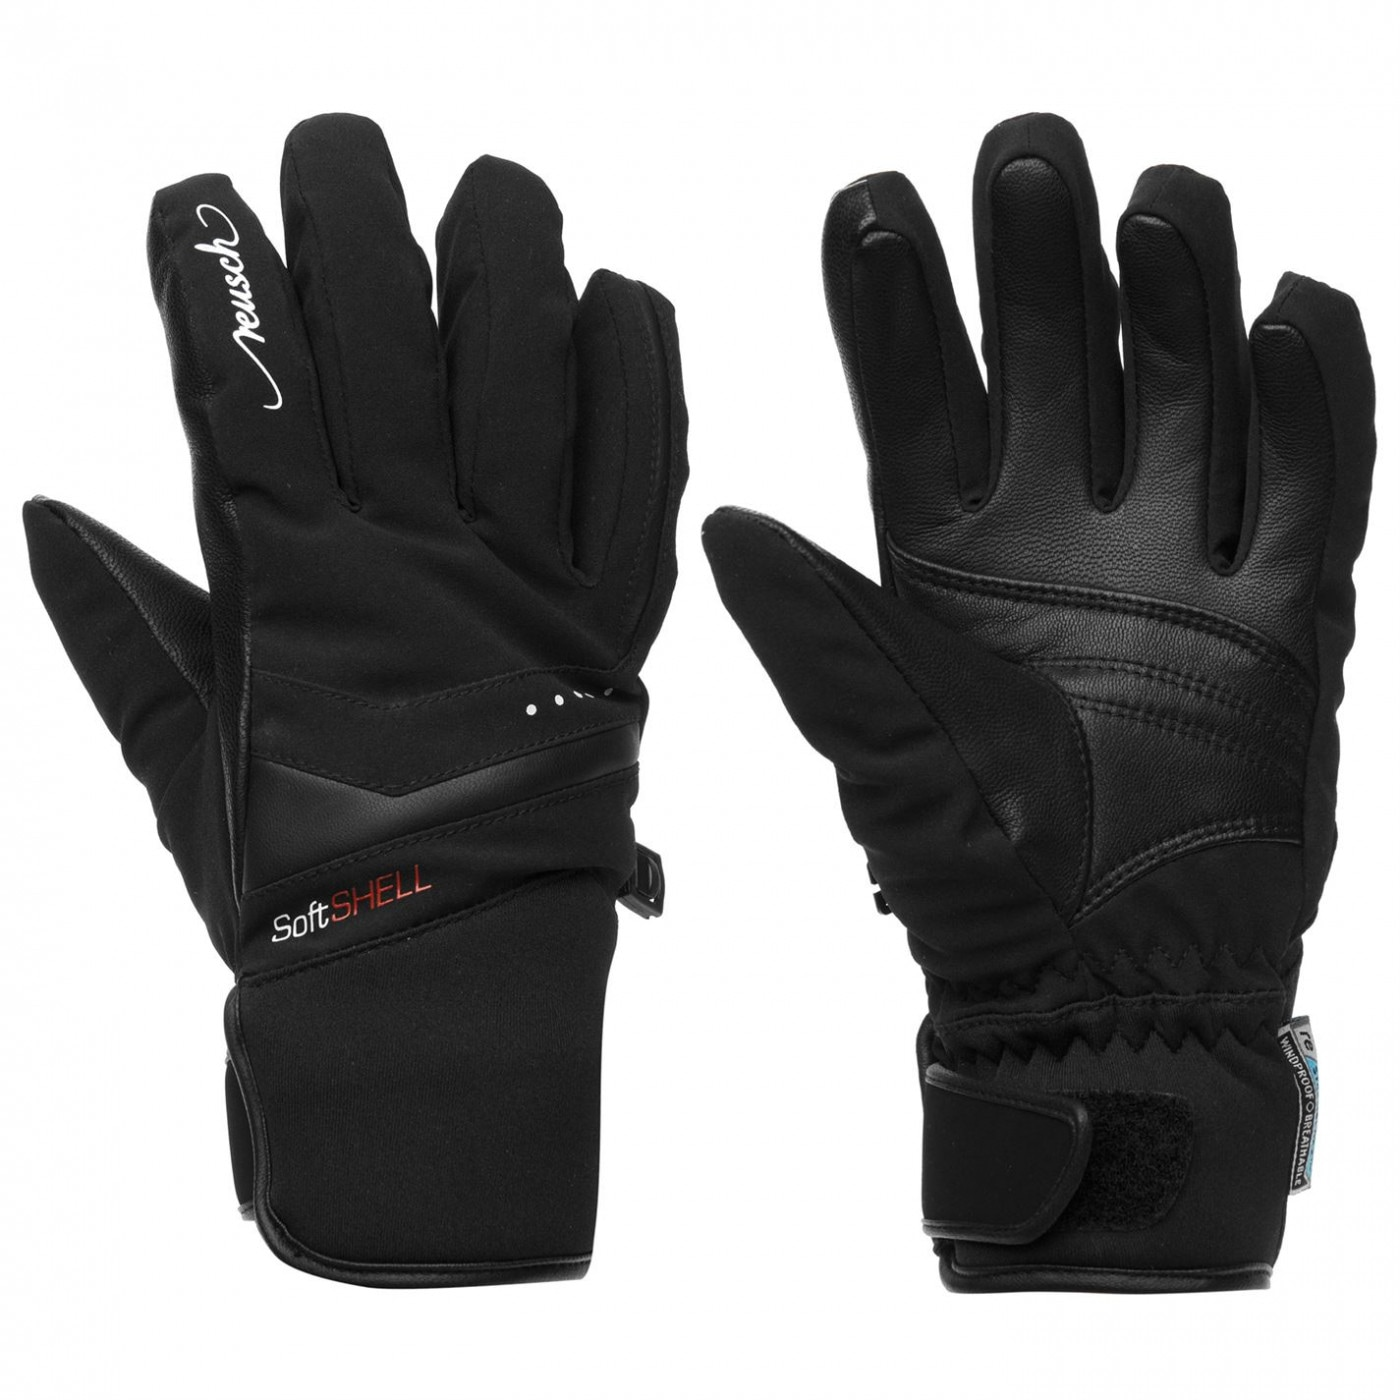 Marker Tomke 2 Gloves Ladies